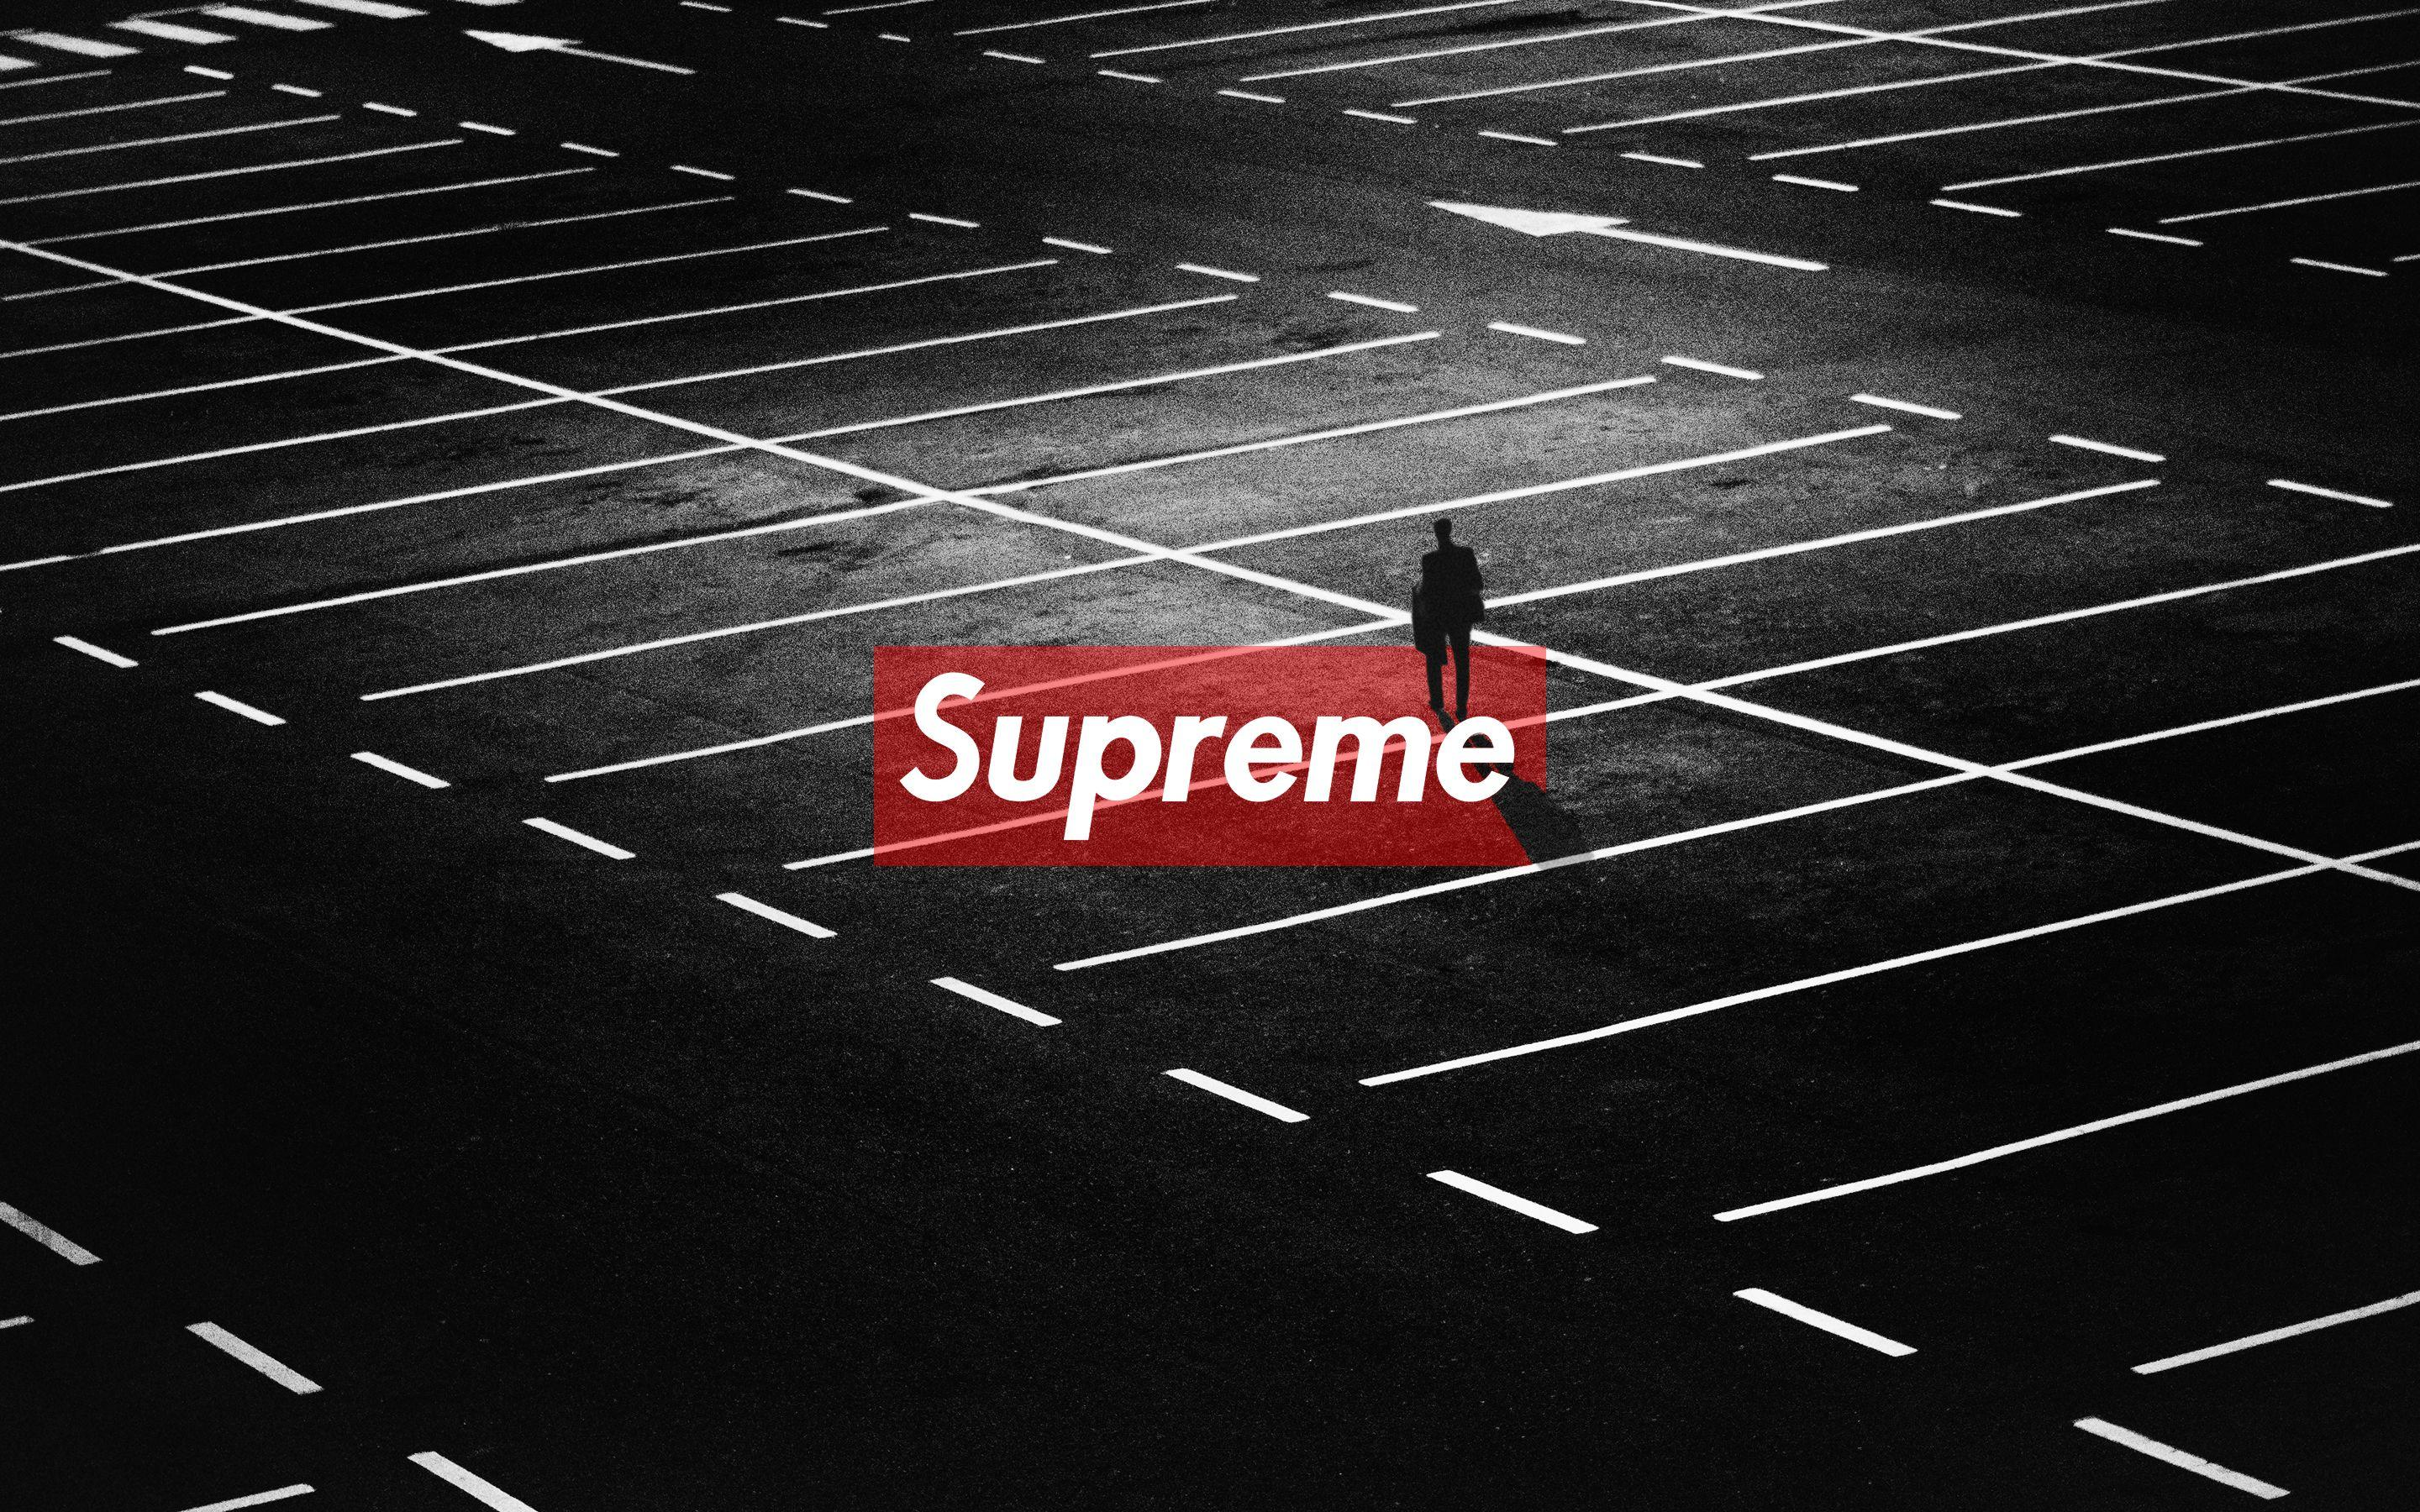 Supreme Wallpapers - Album on Imgur